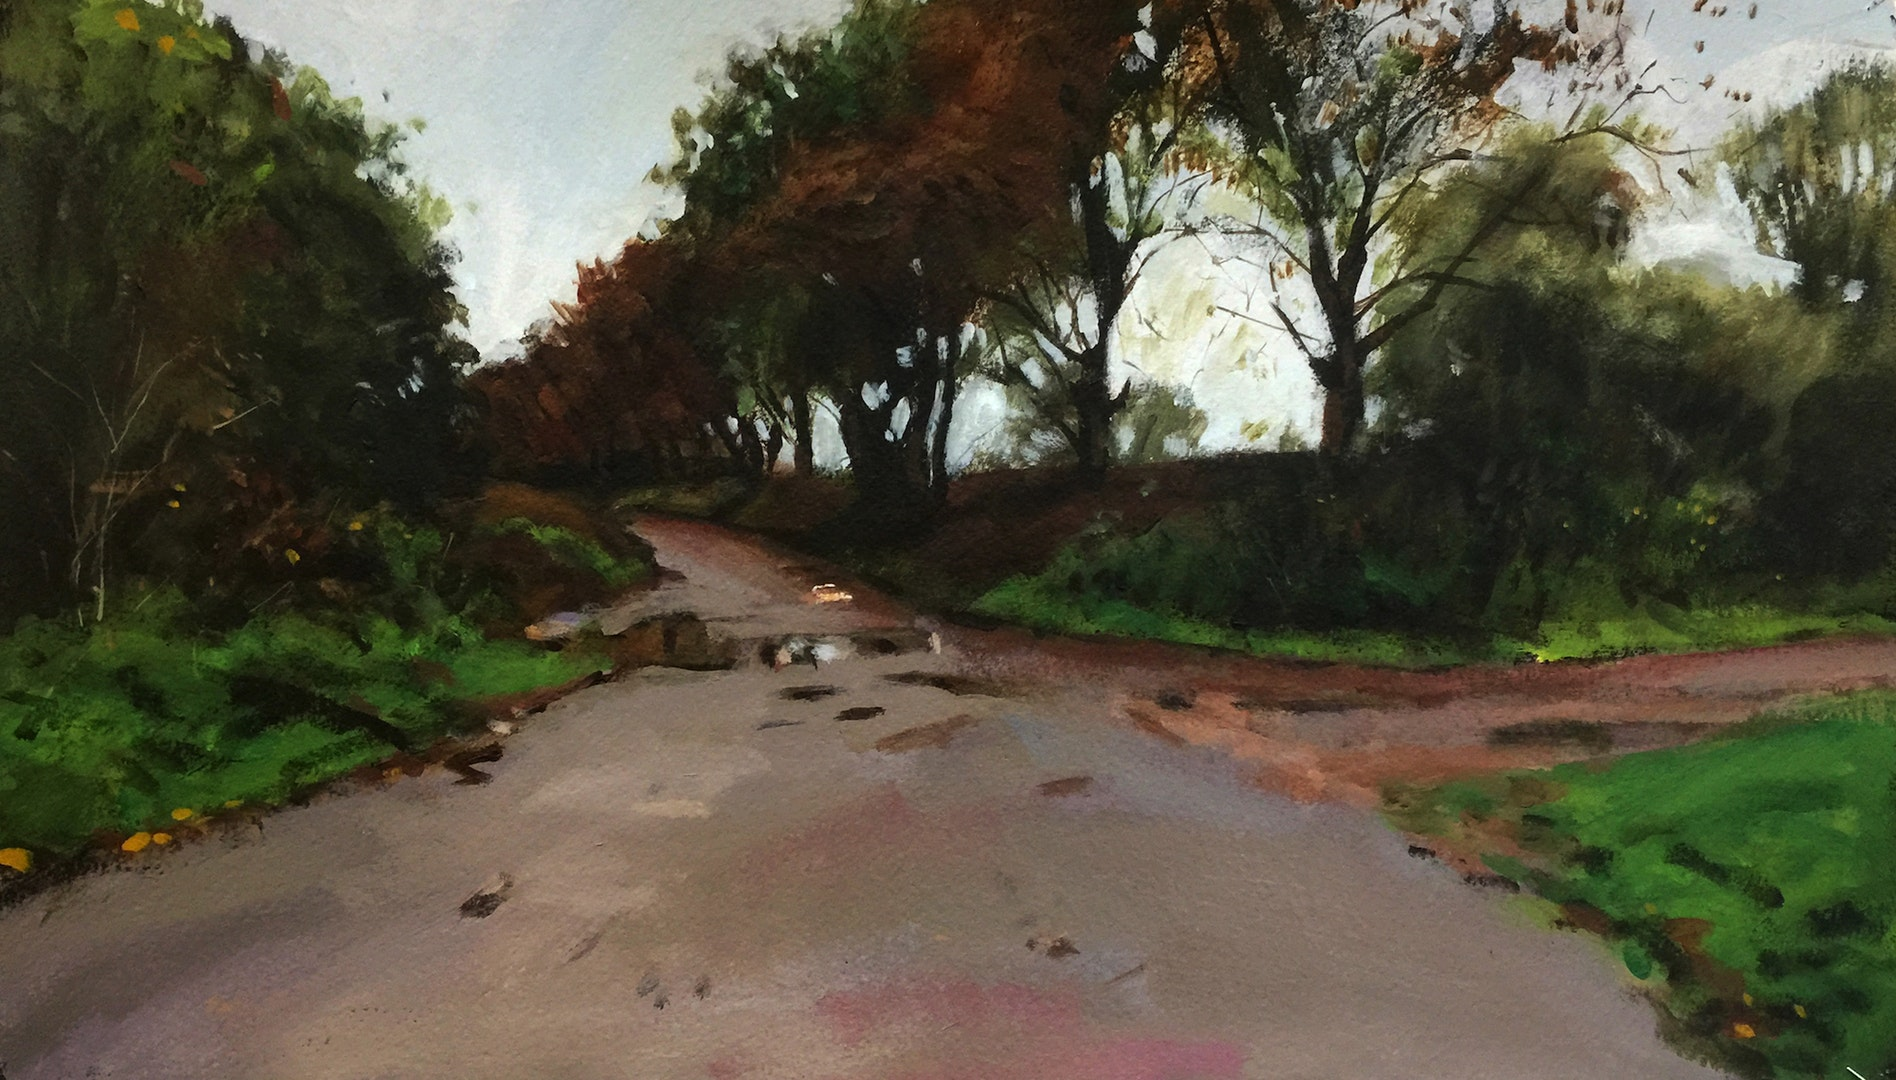 'Wash Lane I', Paul Regan, Acrylic on paper, 33 x 58 cm